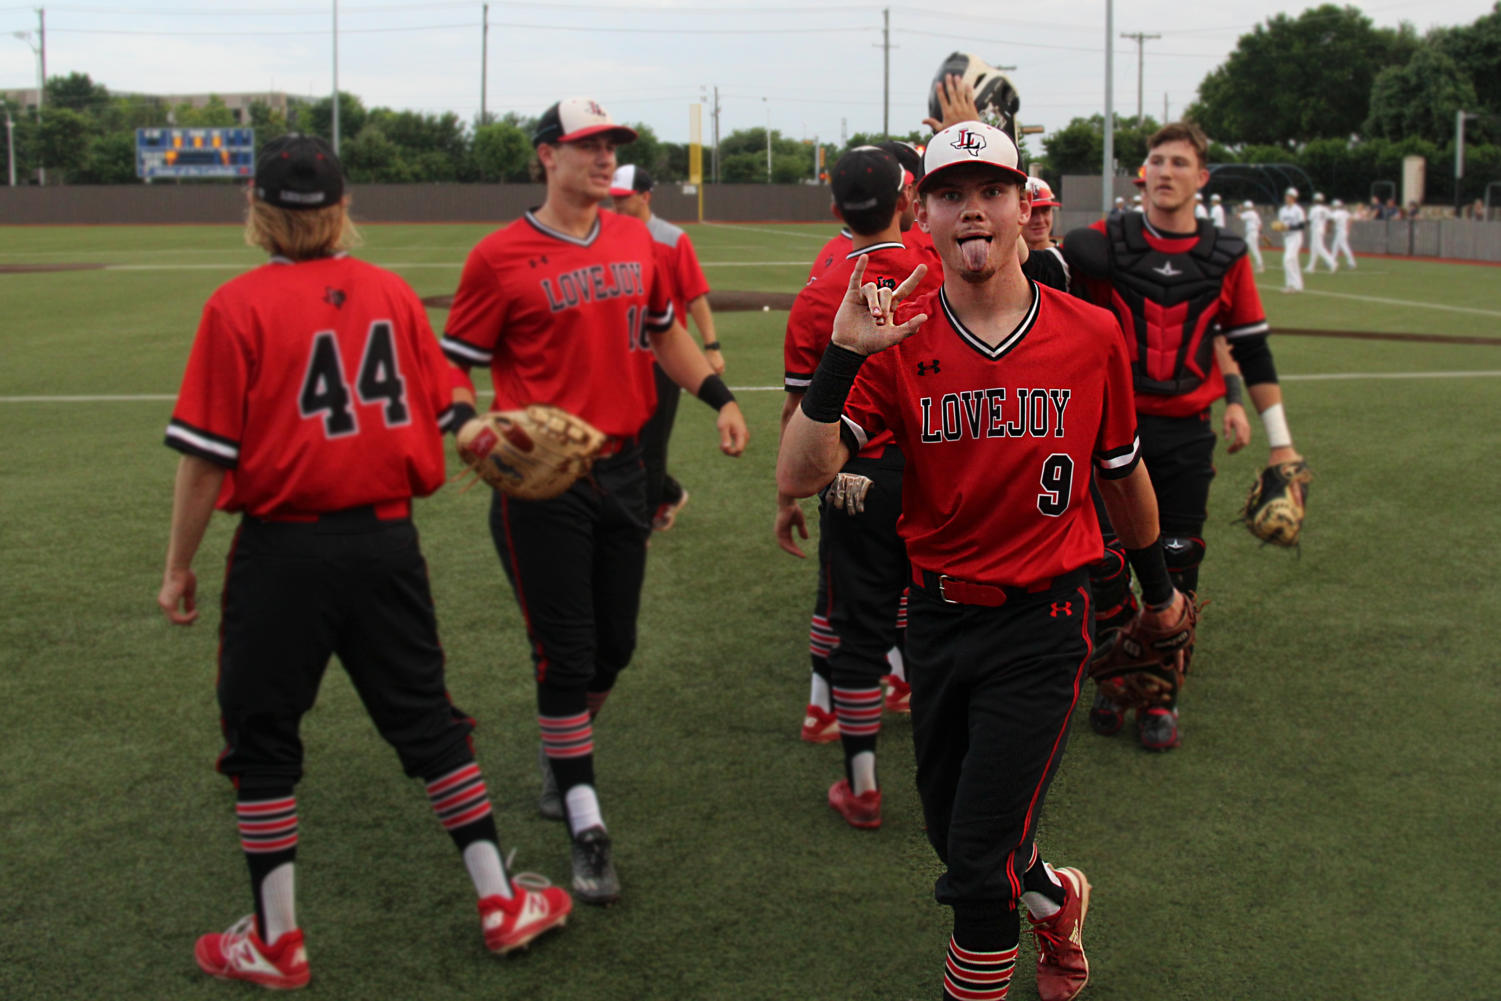 Senior+Jake+Terwilliger%2C+followed+by+his+teammates%2C+enters+the+dugout+after+celebrating+a+7-7+tie+on+the+field.+